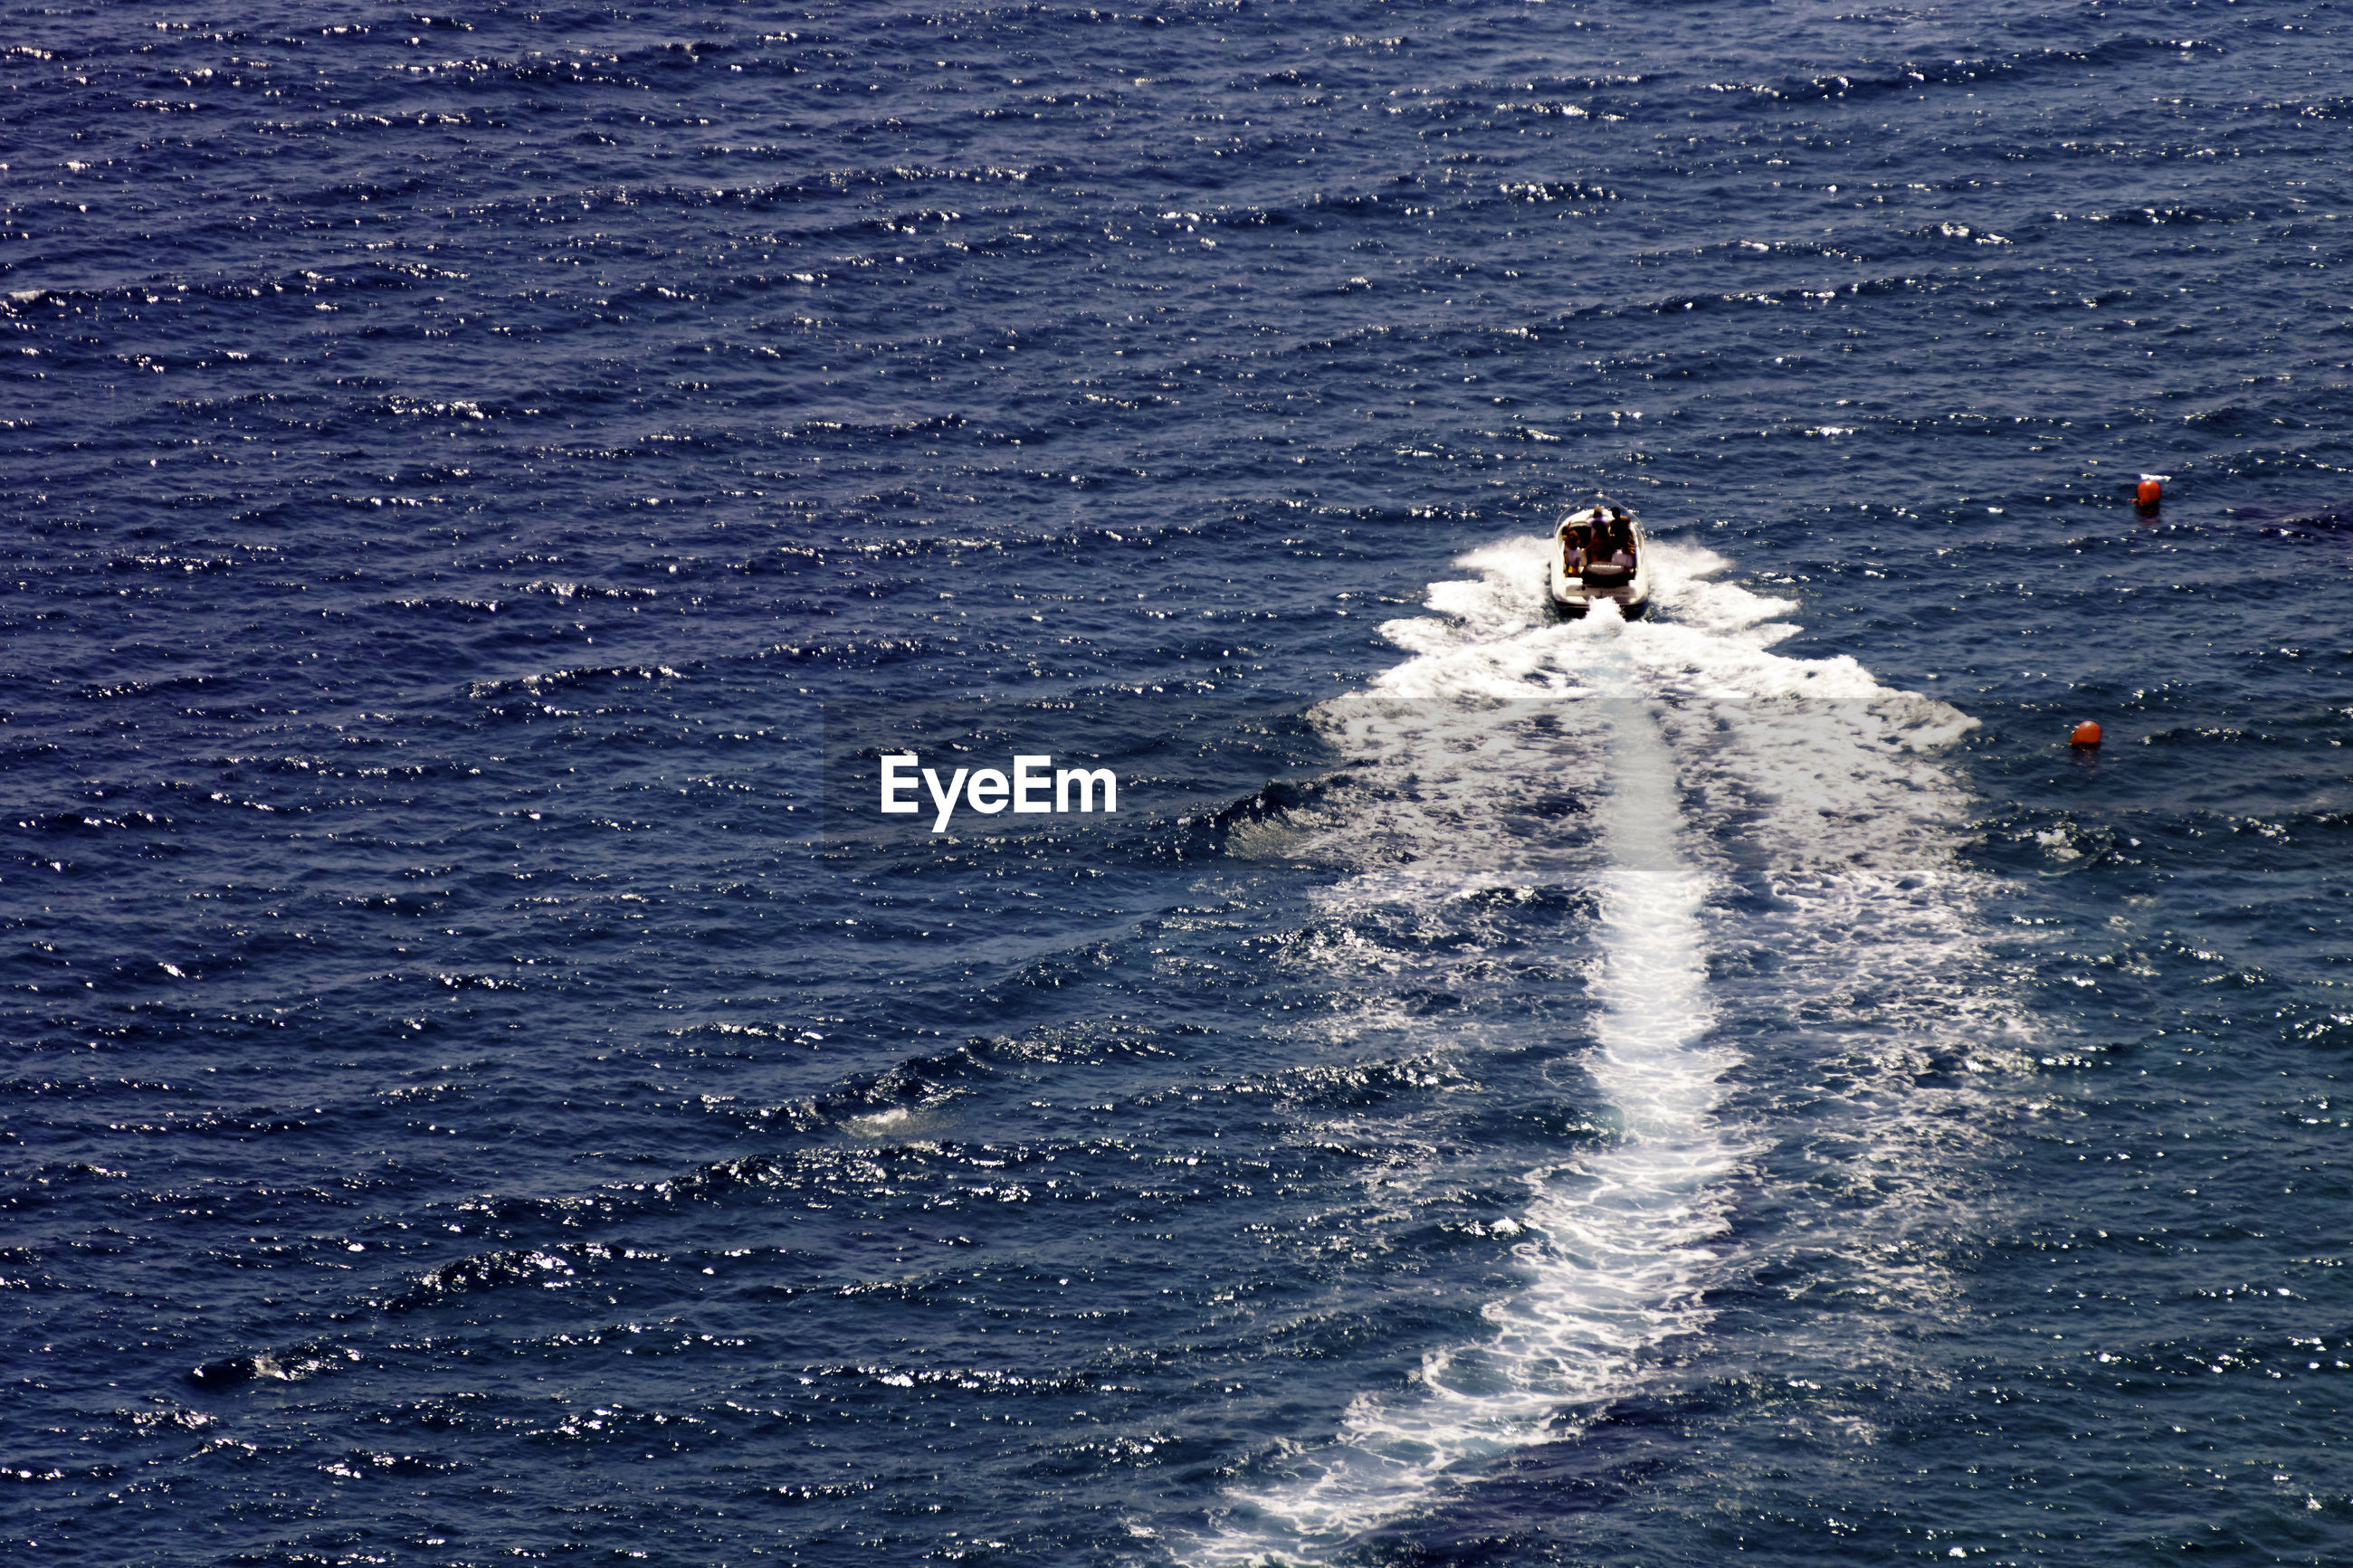 Distant view of people on jet boat at sea